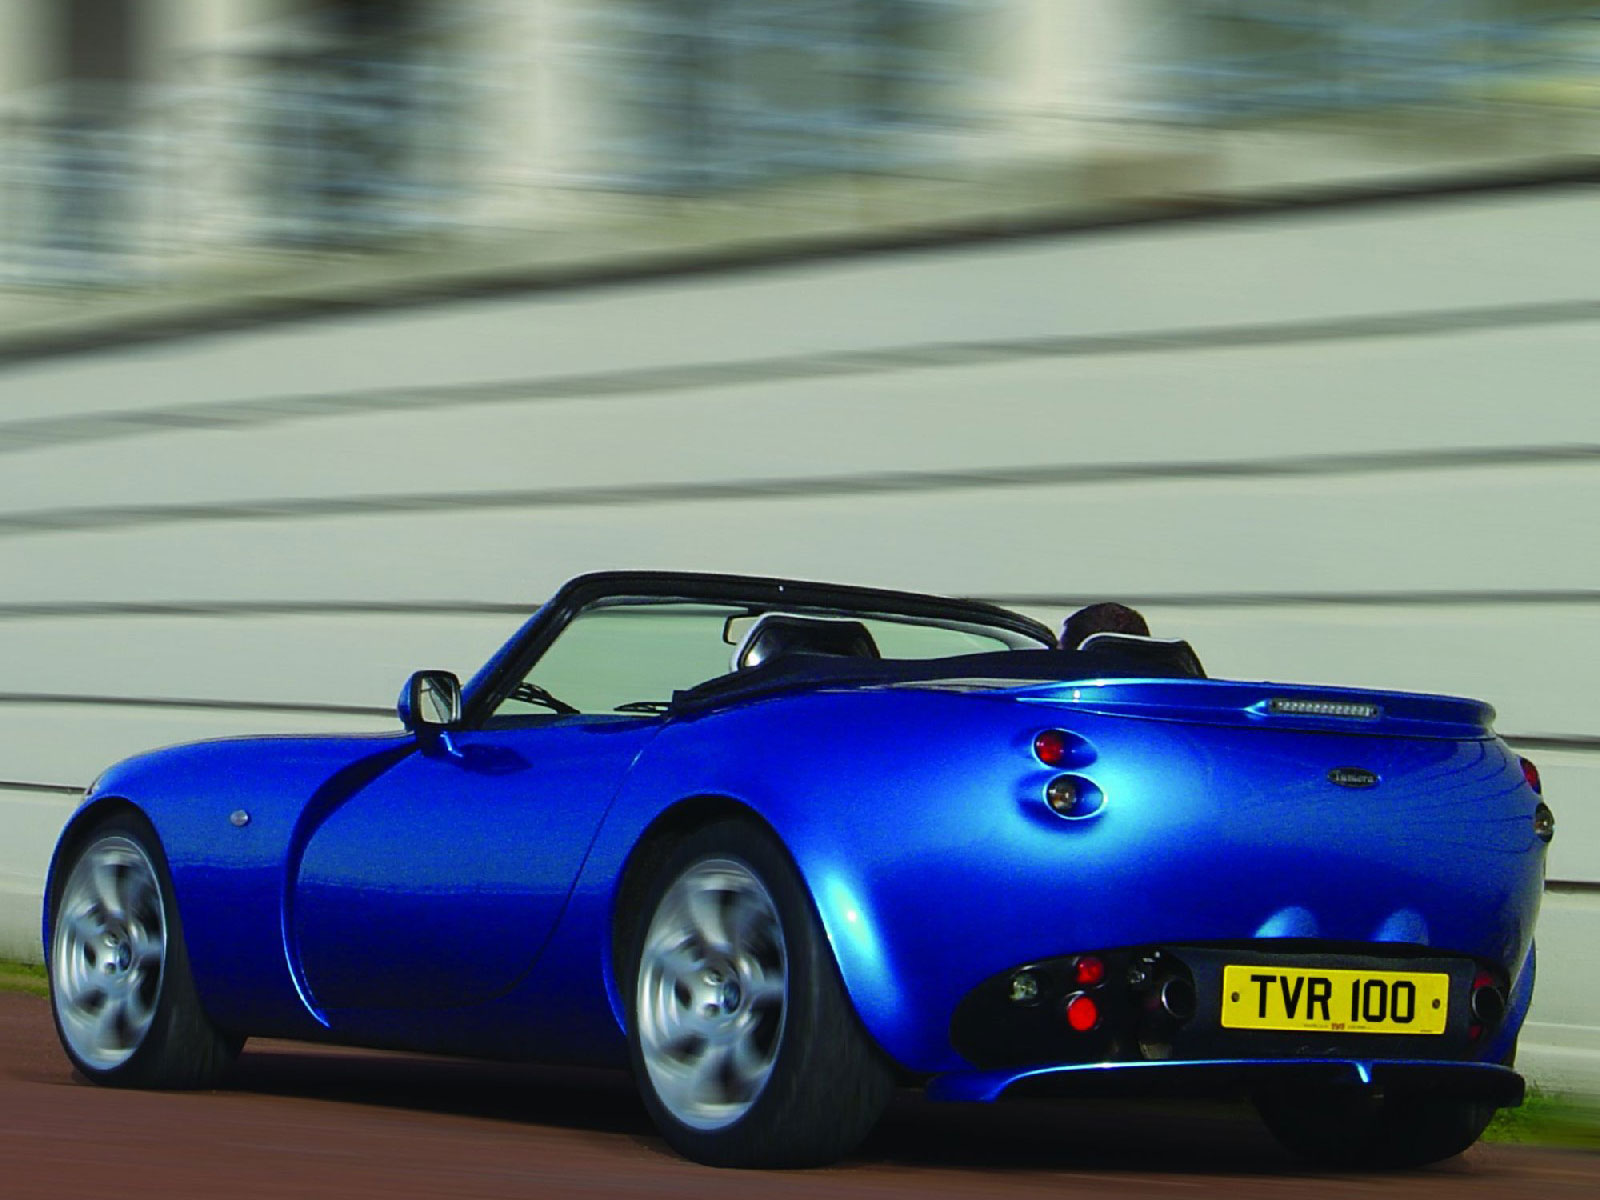 tvr tamora pictures